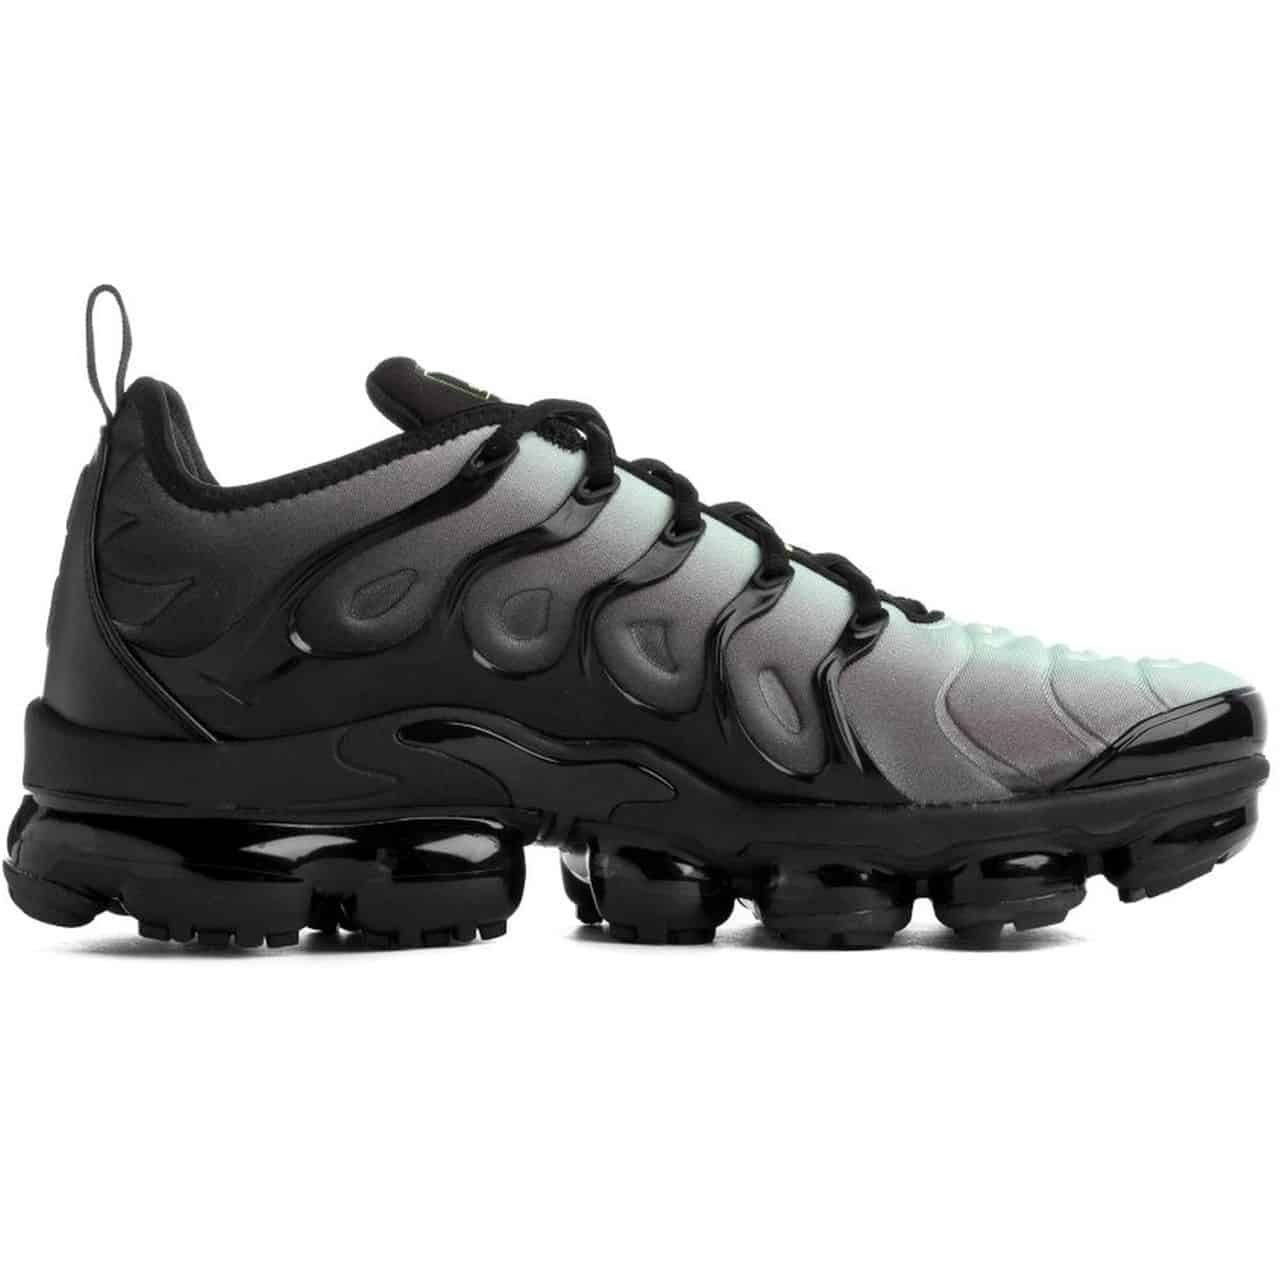 ADIDASI NIKE AIR VAPORMAX PLUS - CW7478 001 18